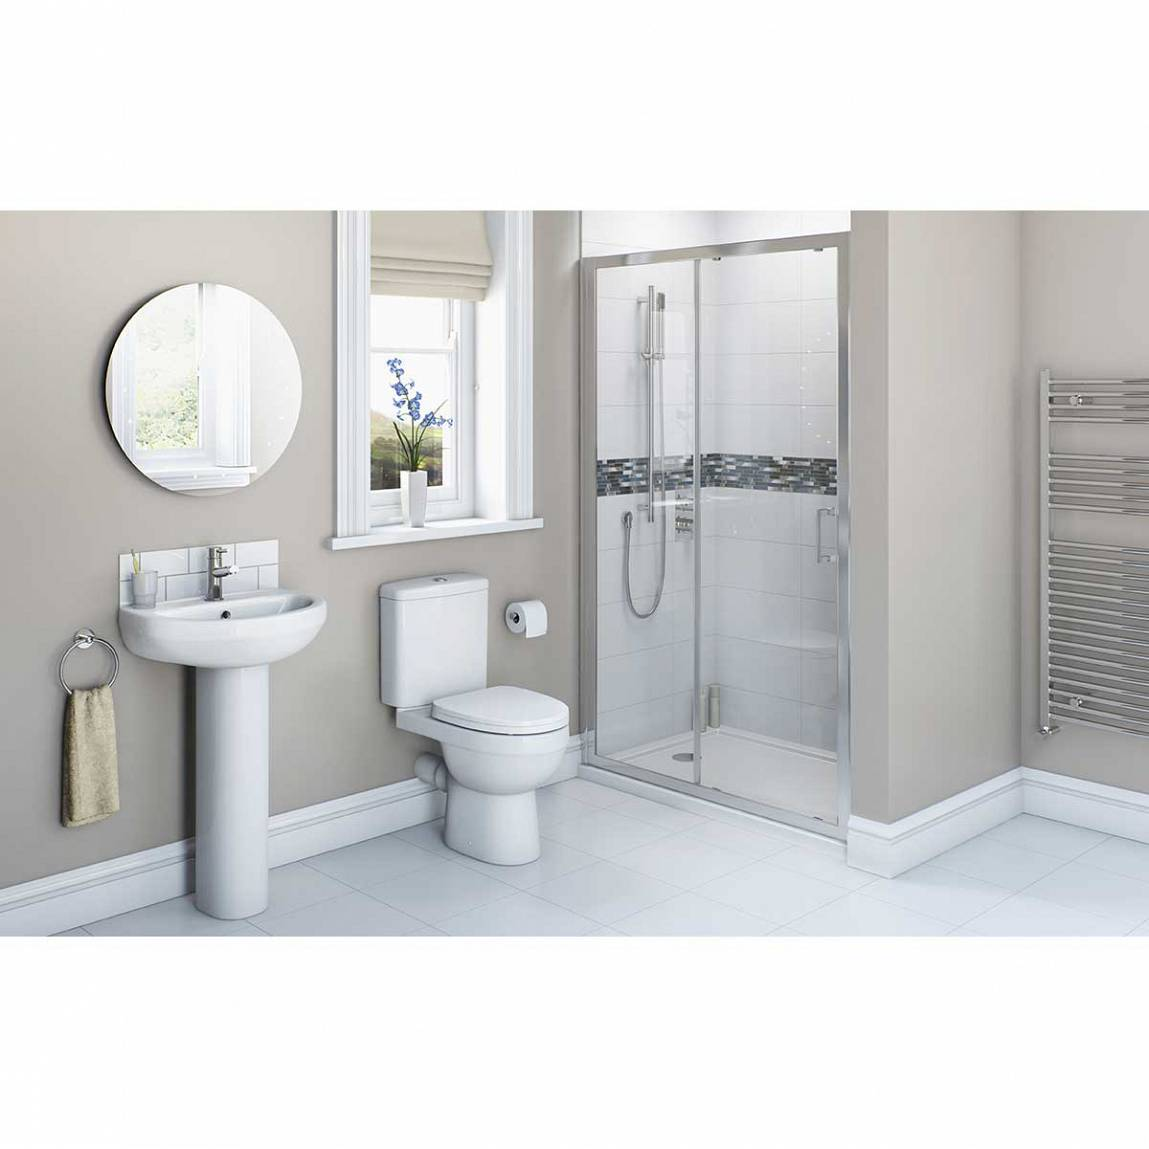 Image of Energy Bathroom set with 1100 Sliding Shower Door